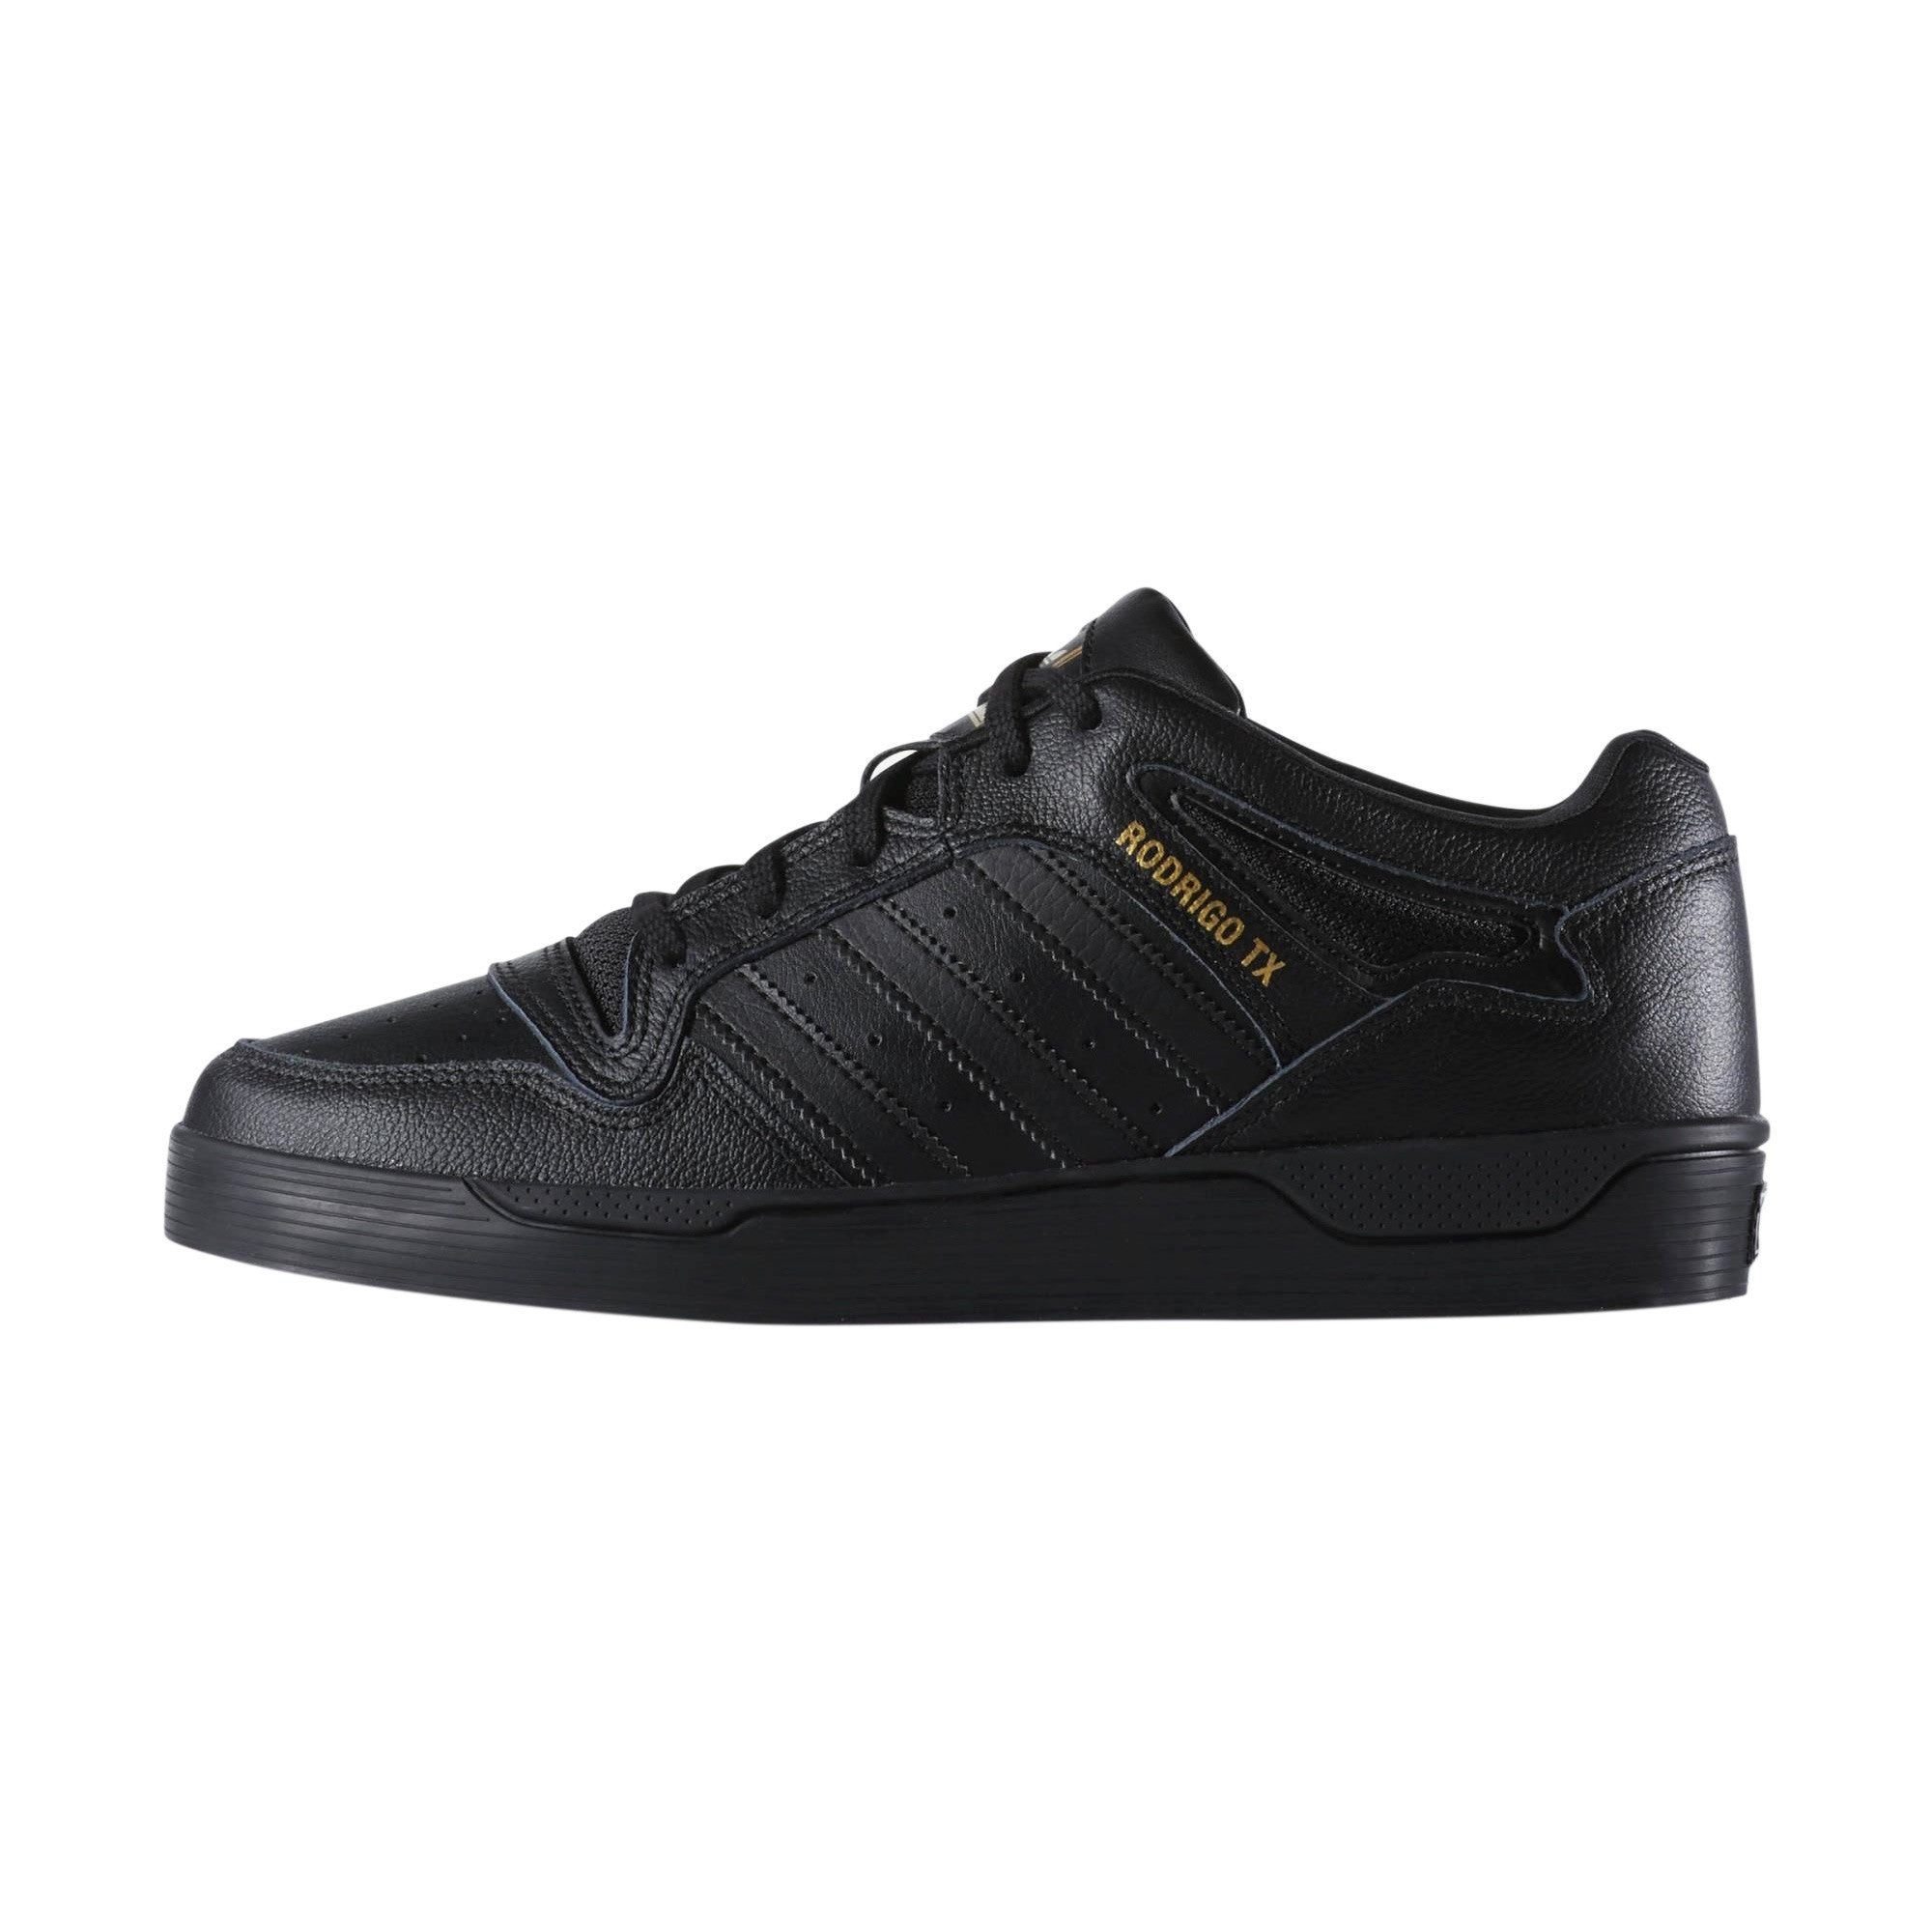 DGK Adidas Locator Shoe Black